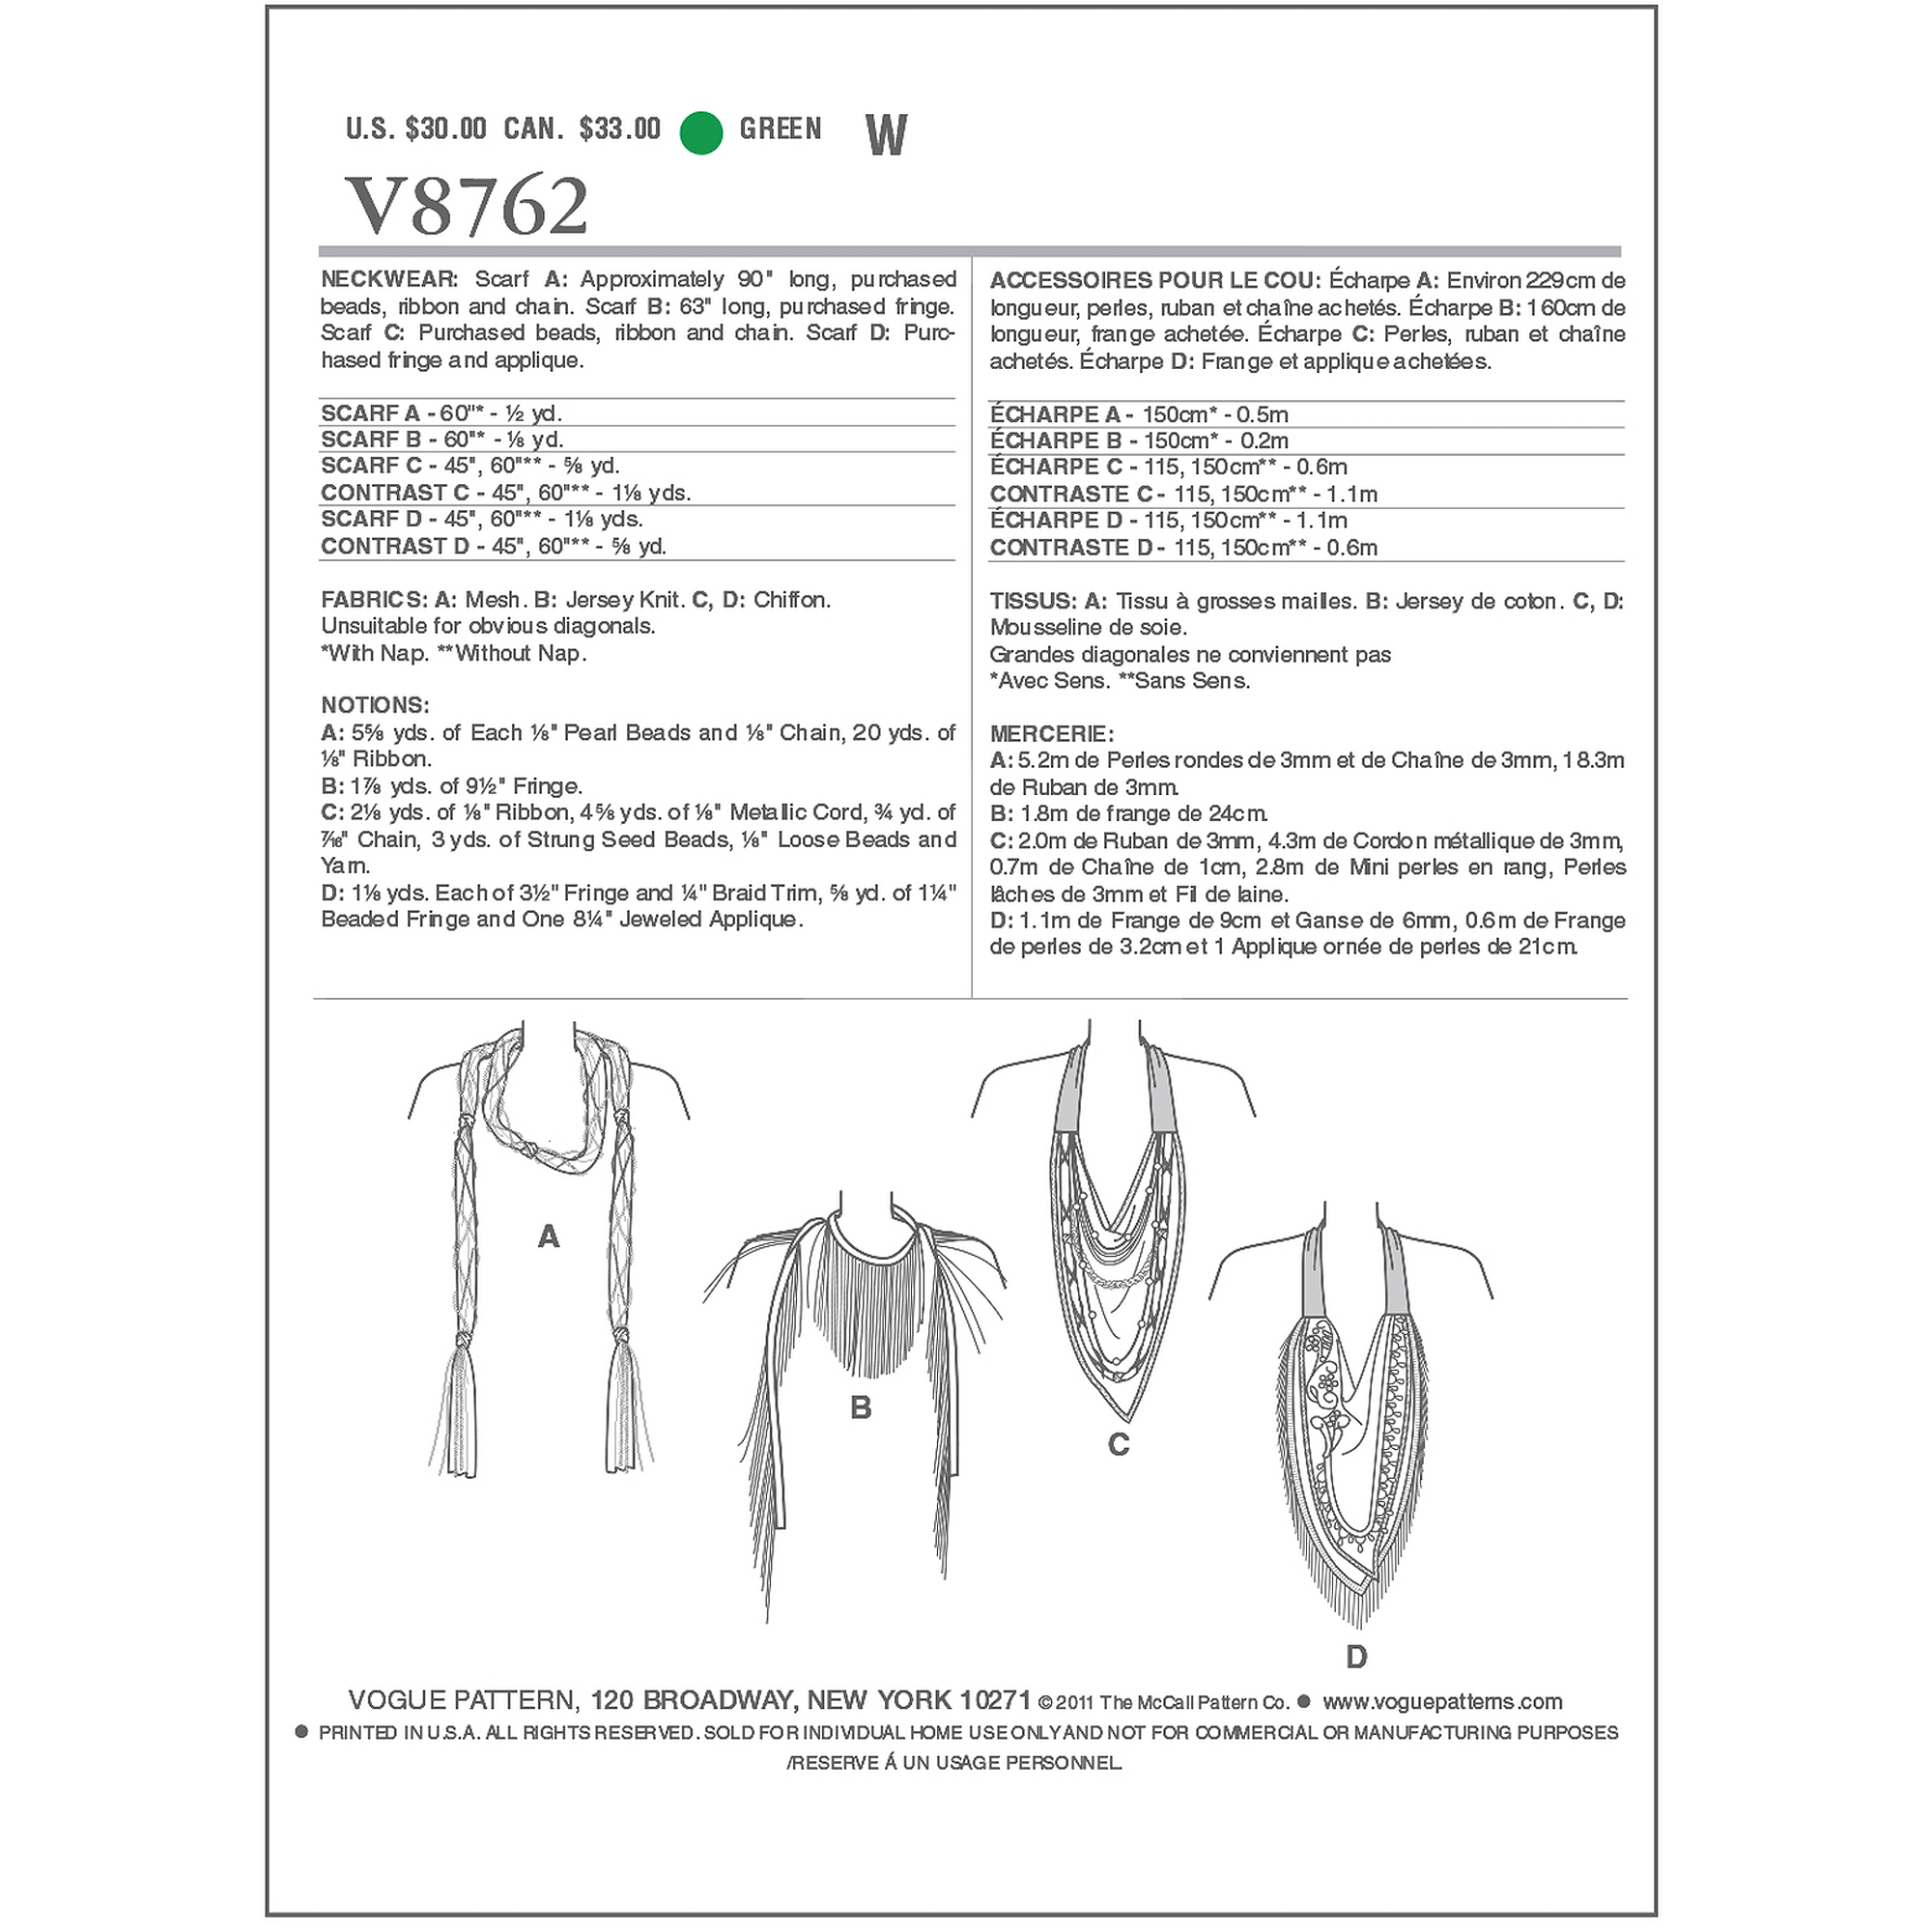 Vogue Pattern Neckwear, All Sizes